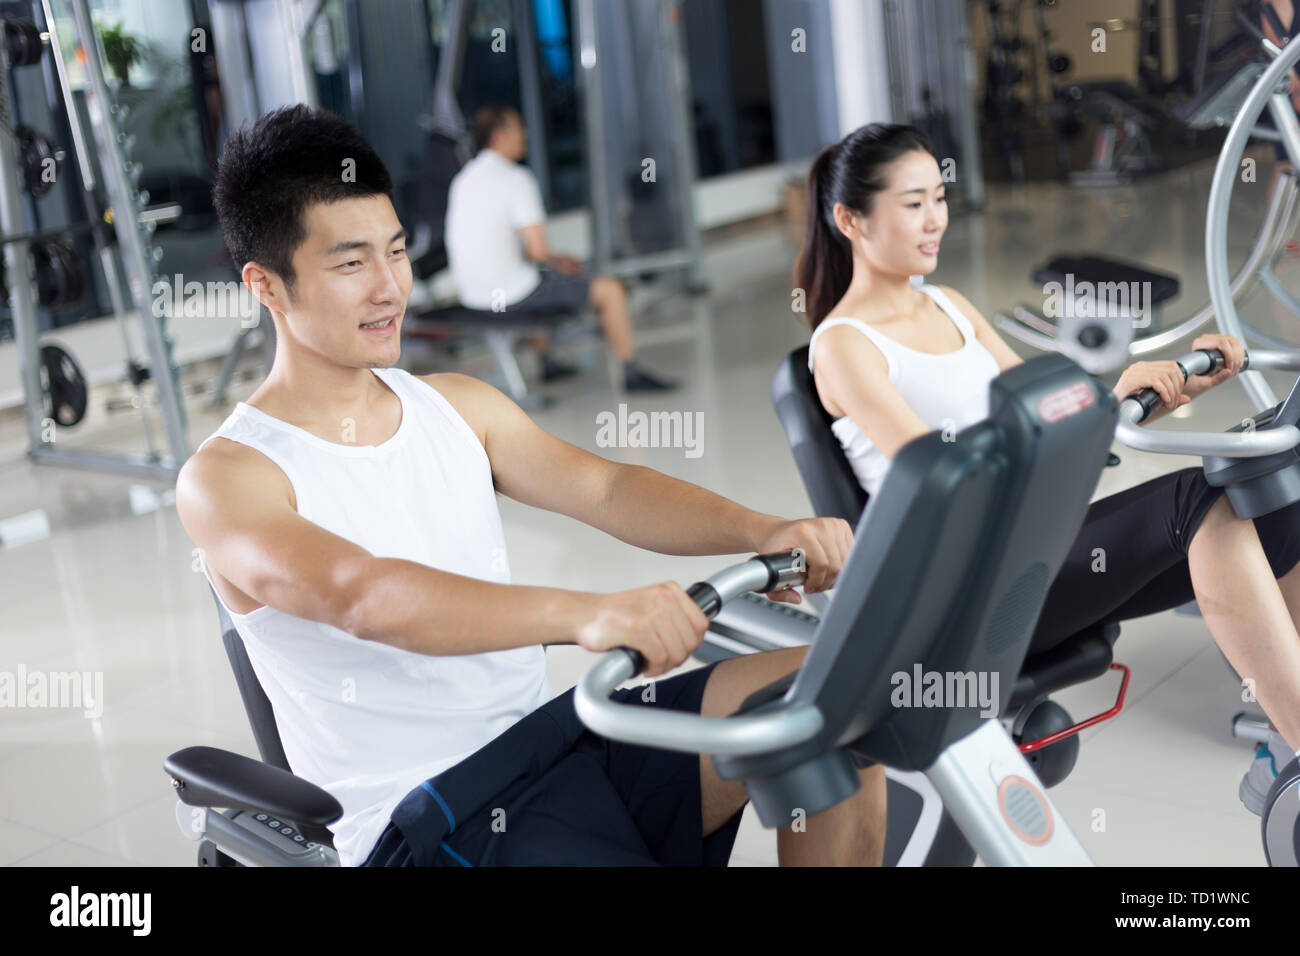 people work out in modern gym - Stock Image